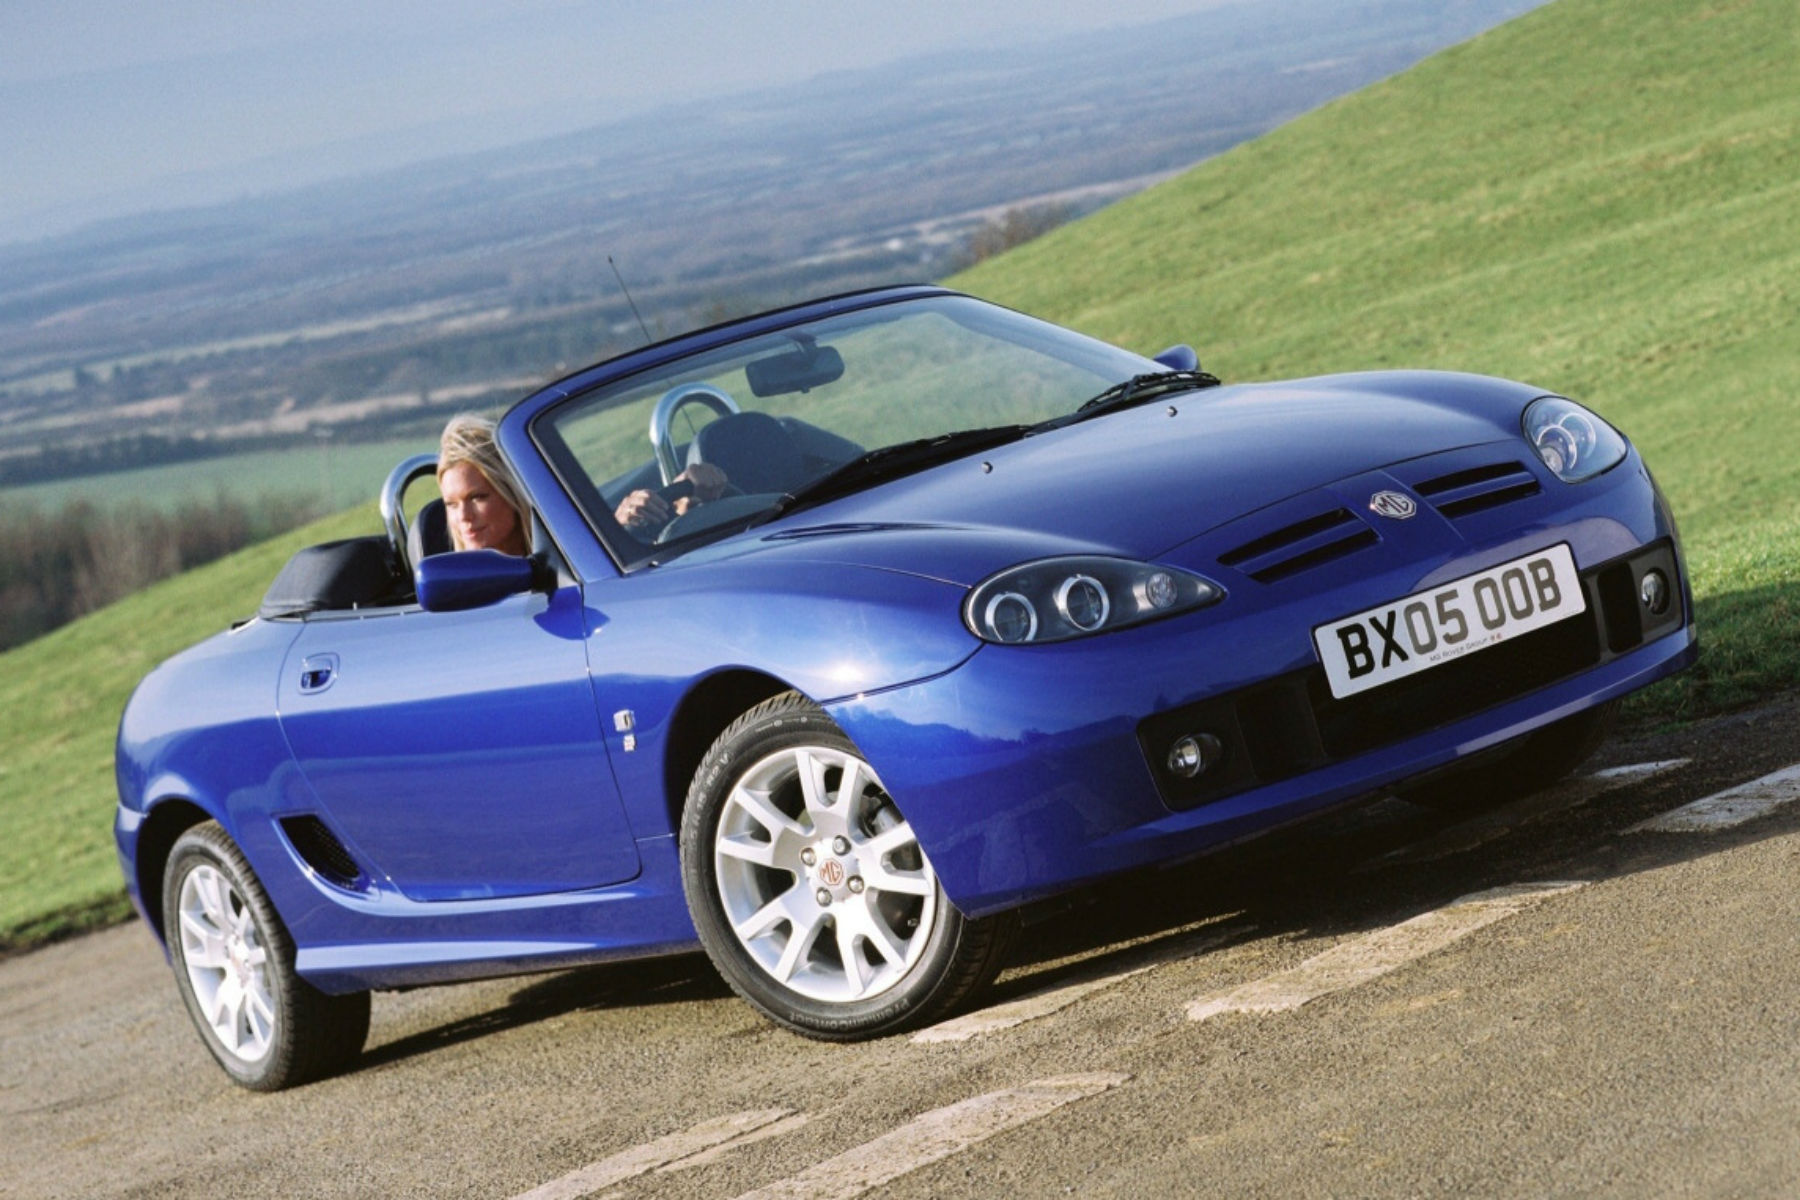 These are the UK's favourite car names